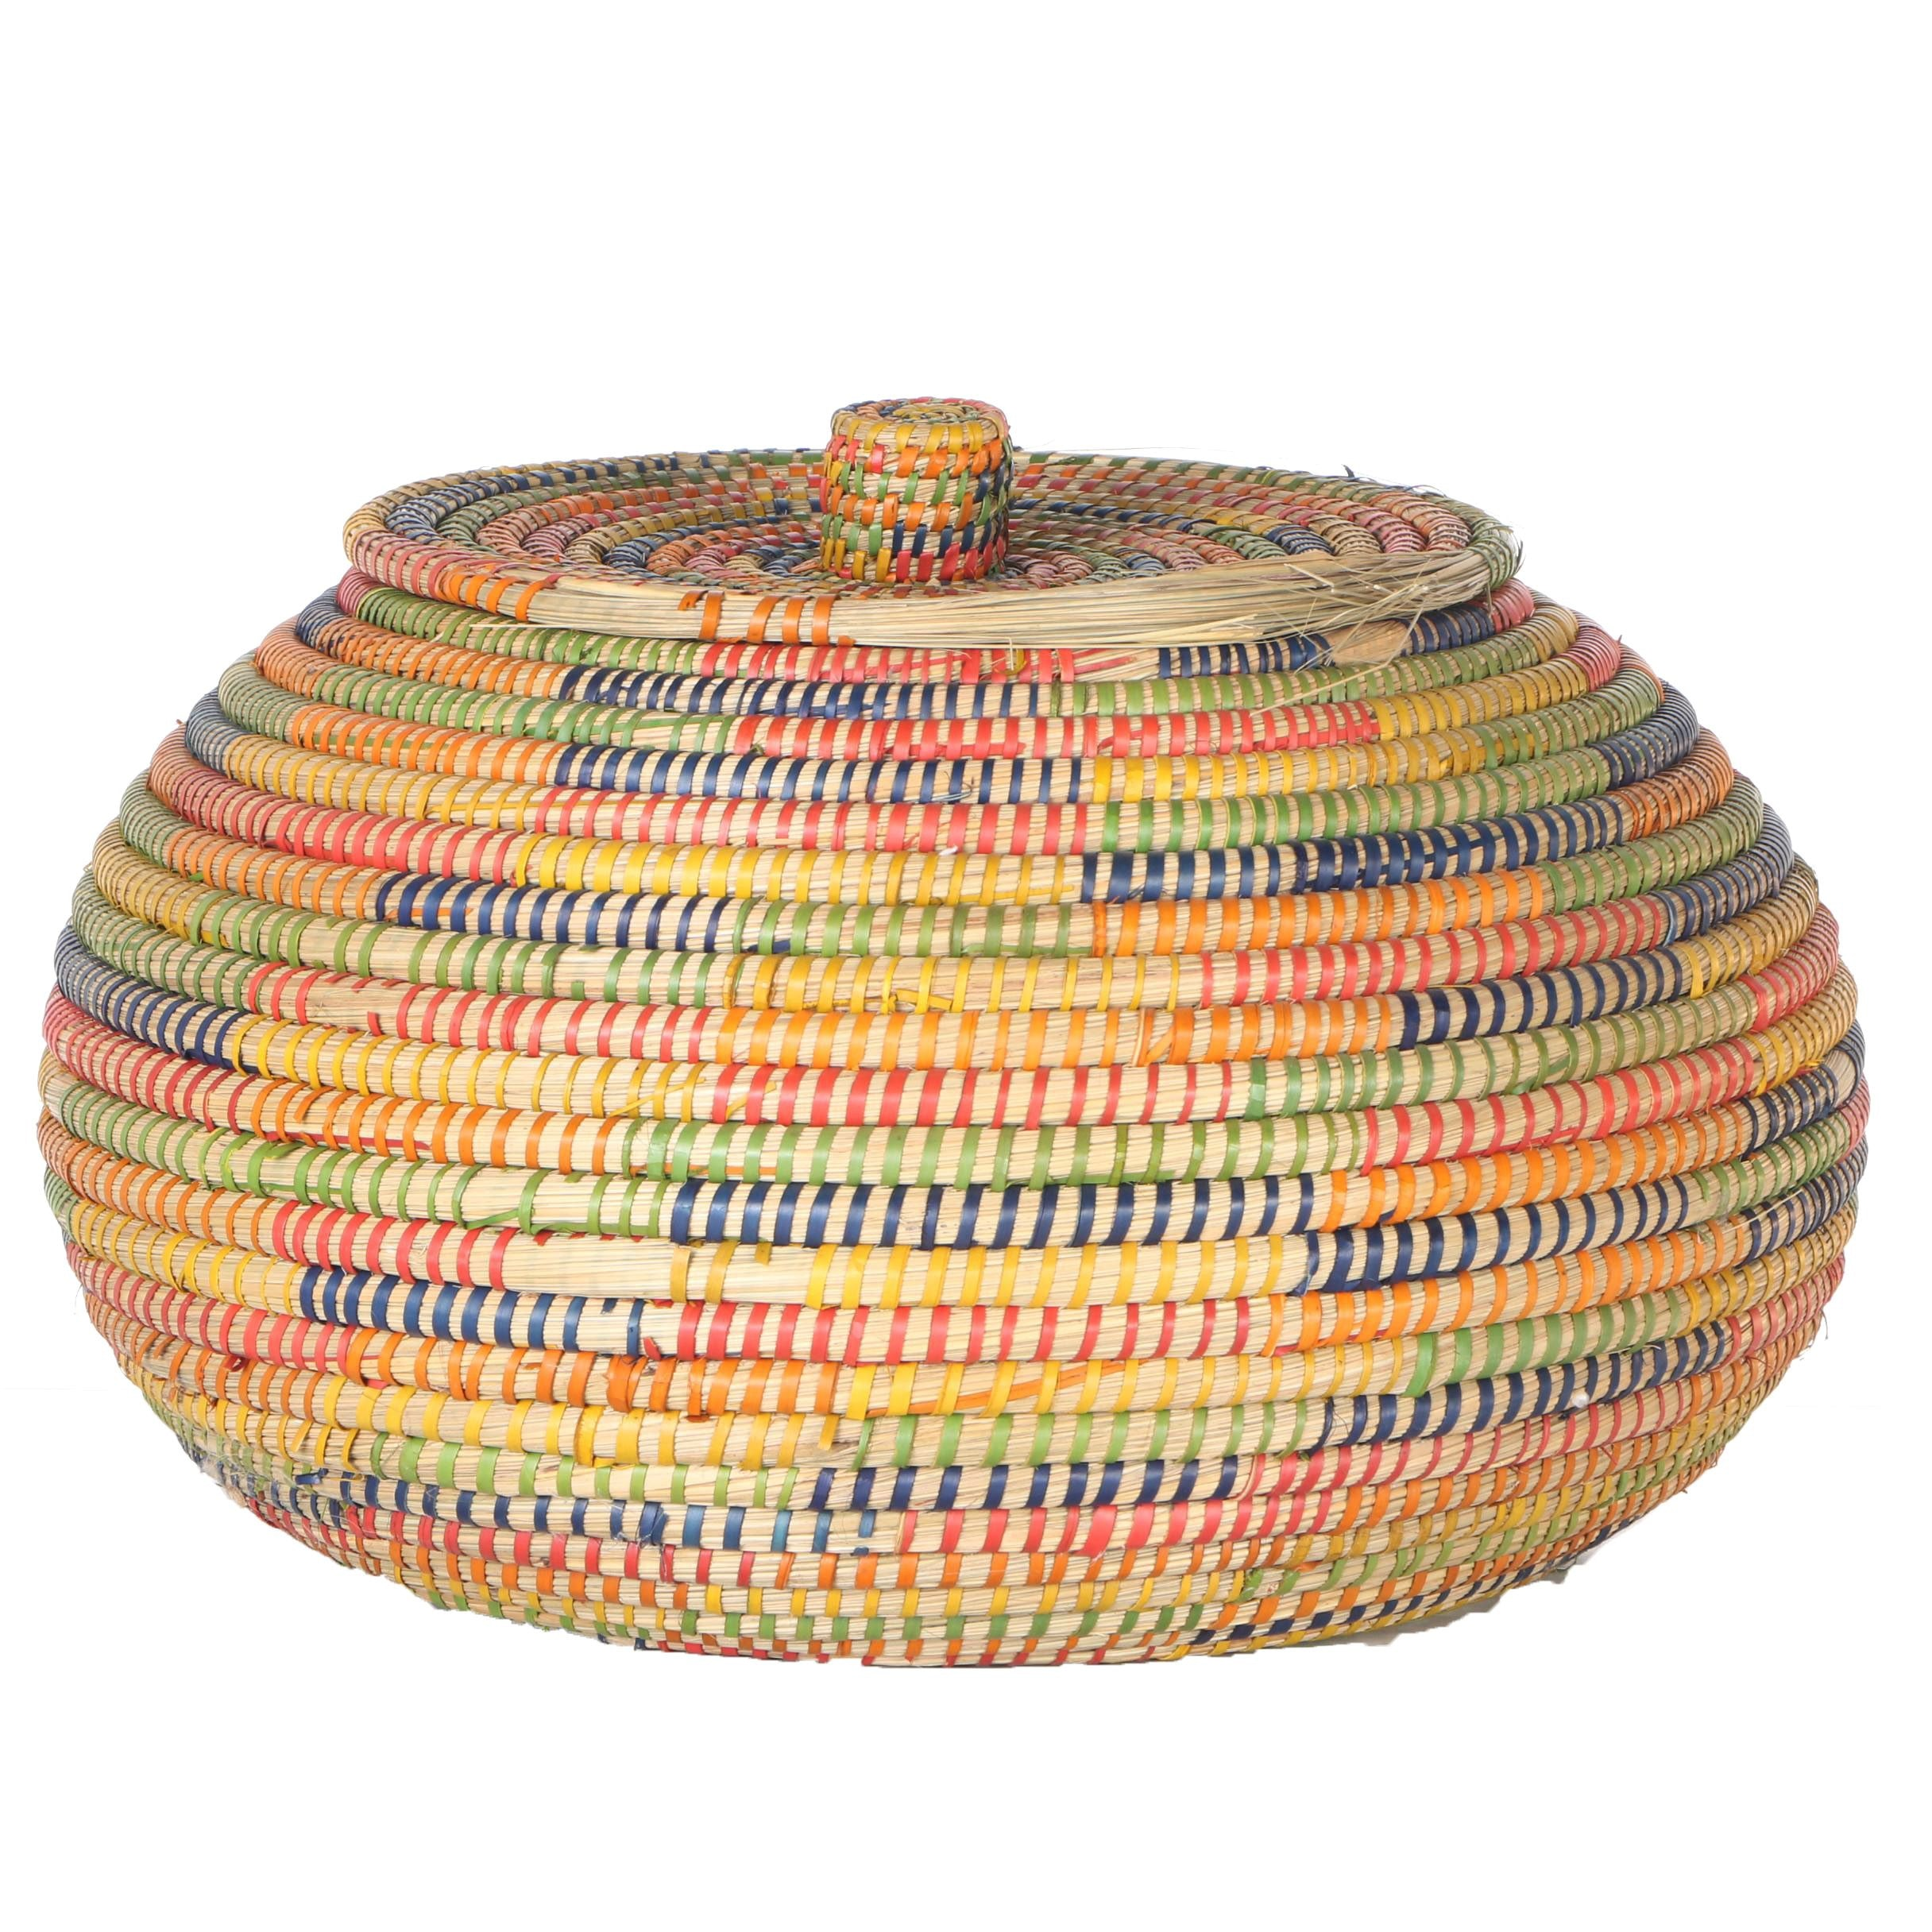 Primary and Secondary Color Stripe Wicker Basket